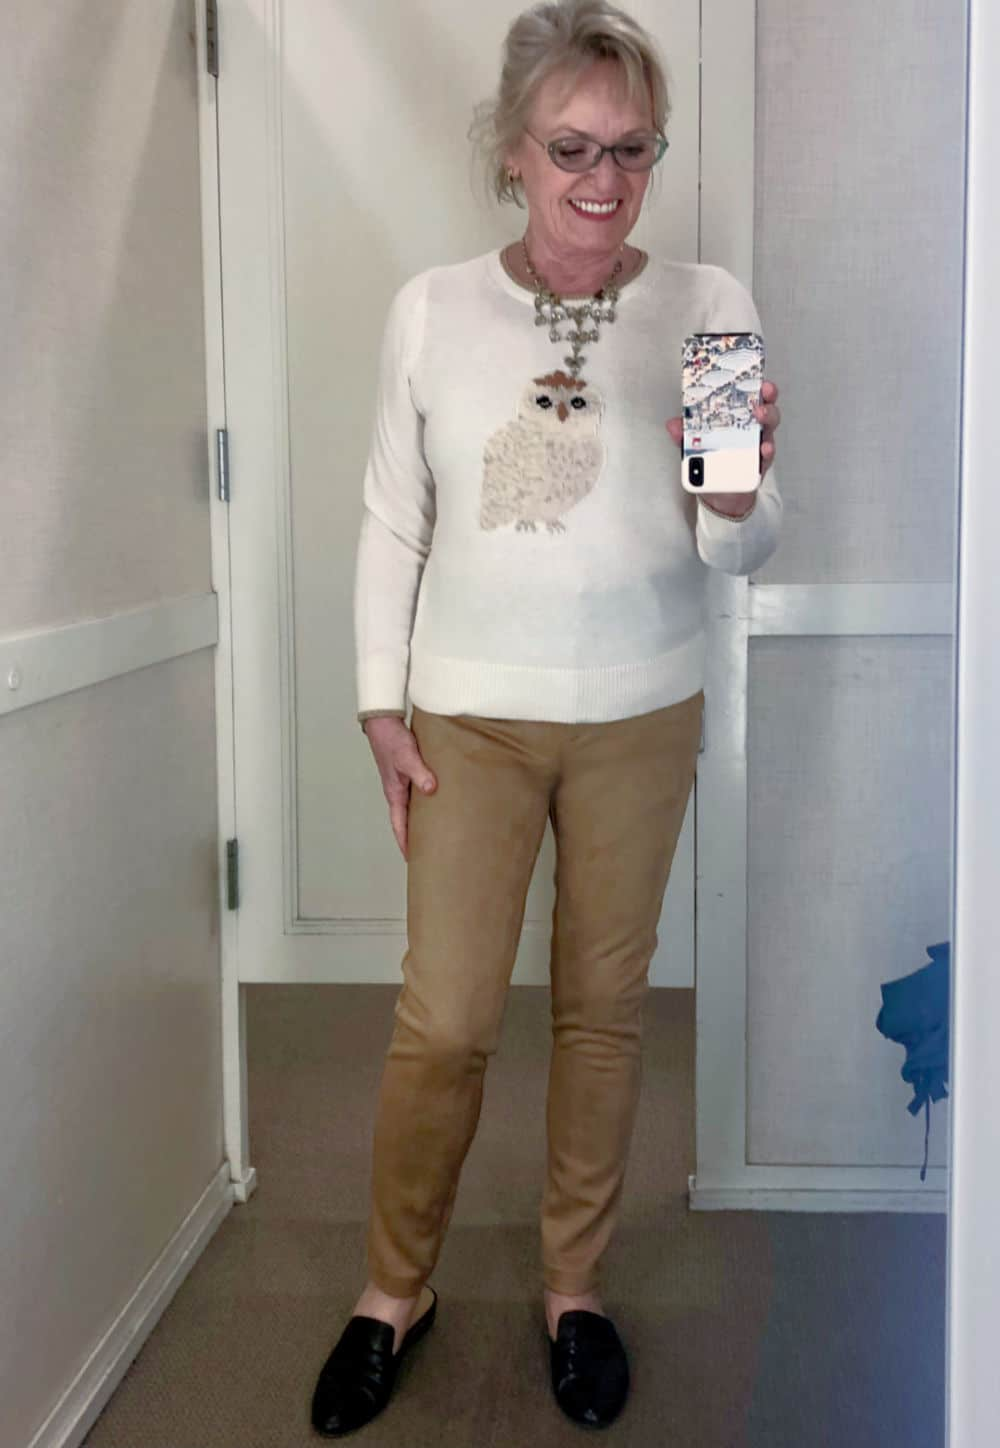 fashion blogger jennifer connolly wearing owl sweater and faux suede jeans in Loft changing room